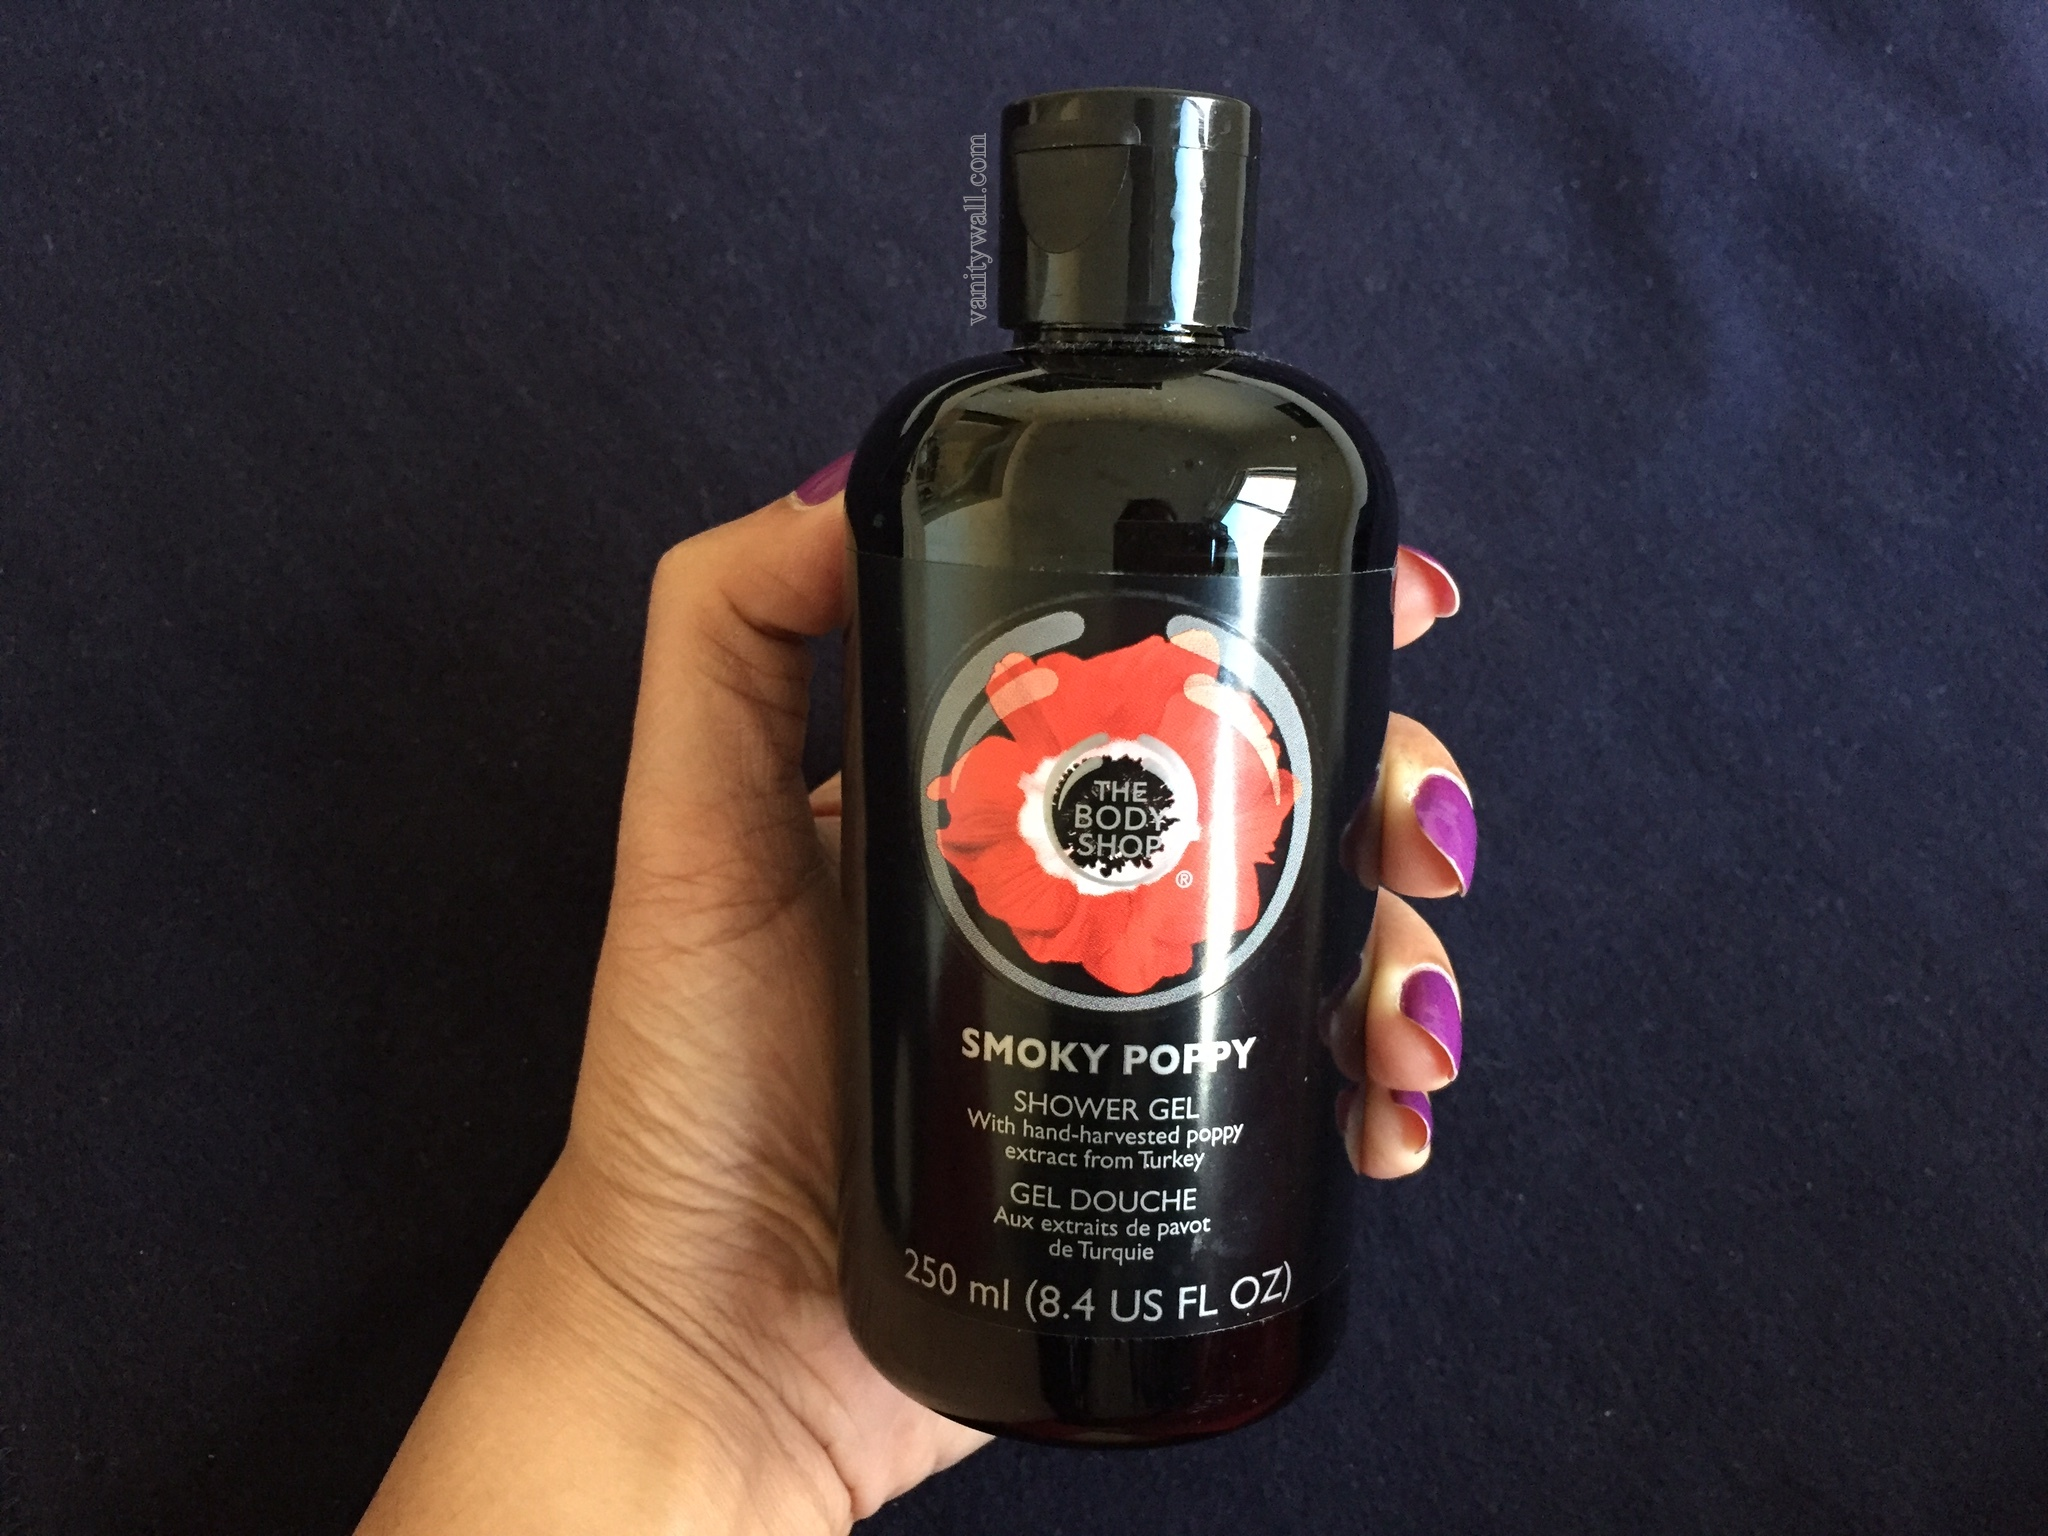 the body shop smoky poppy shower gel